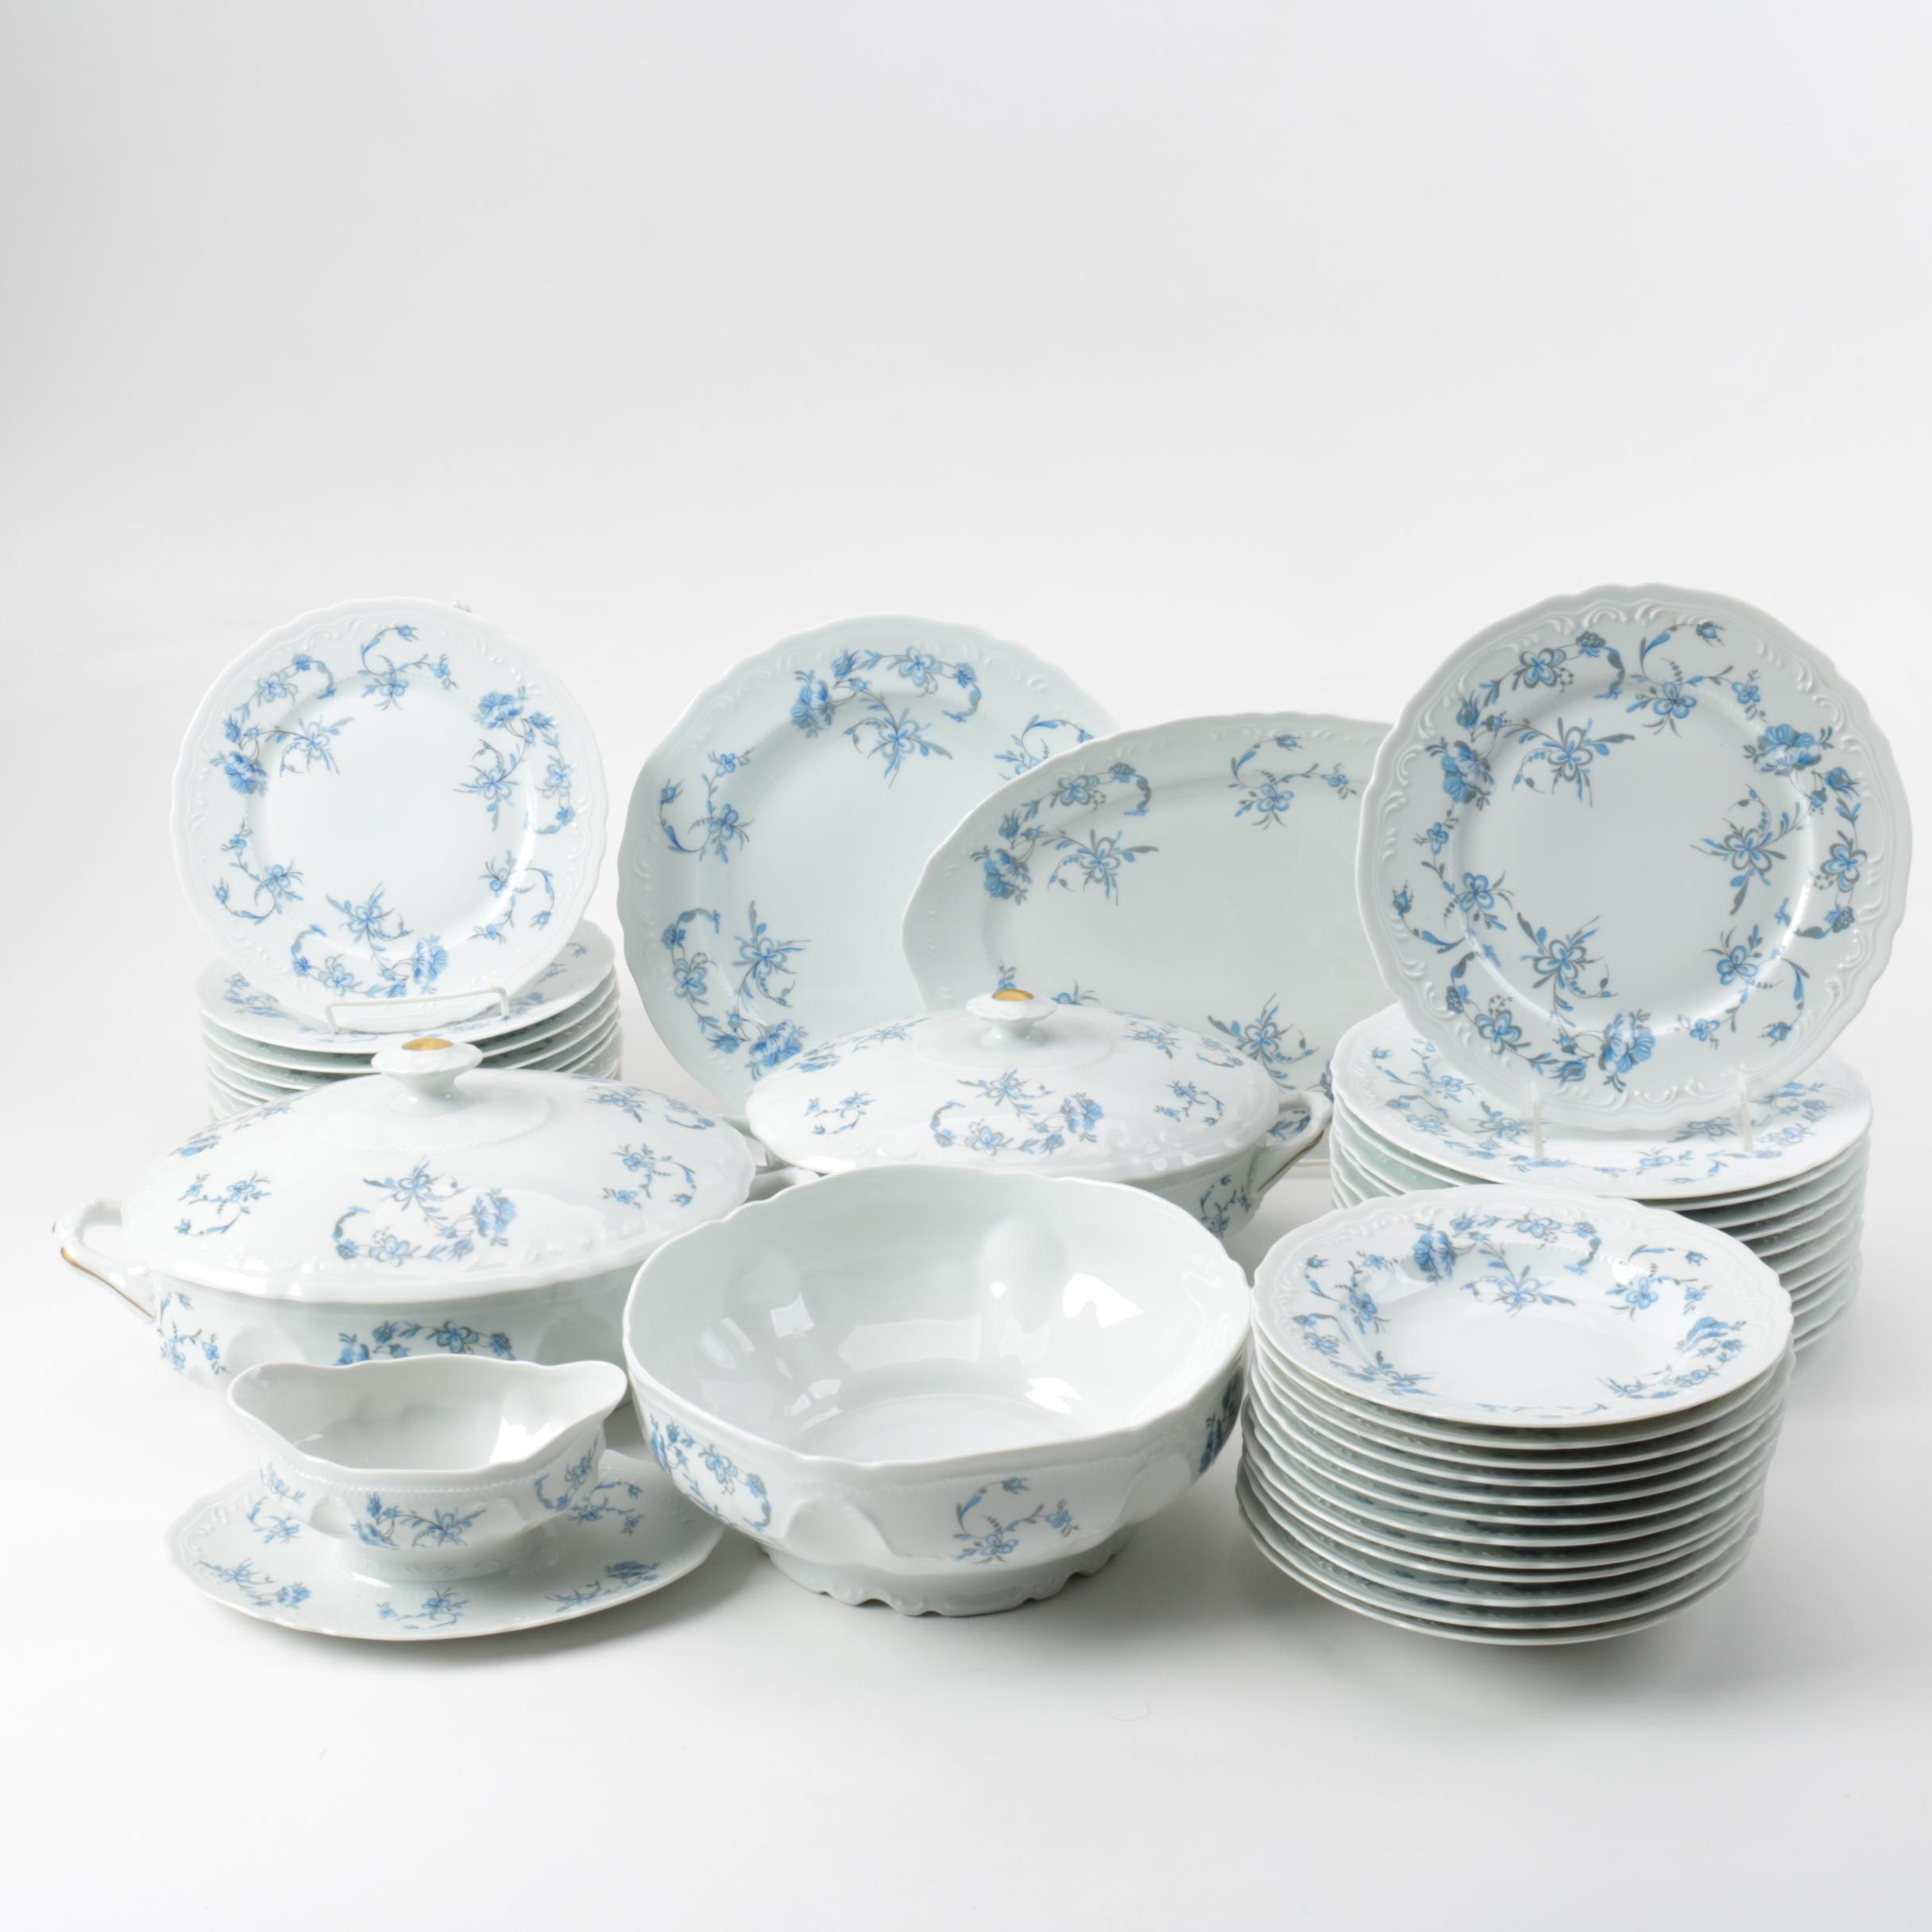 Royal Limoges Porcelain Tableware ... & Royal Limoges Porcelain Tableware : EBTH